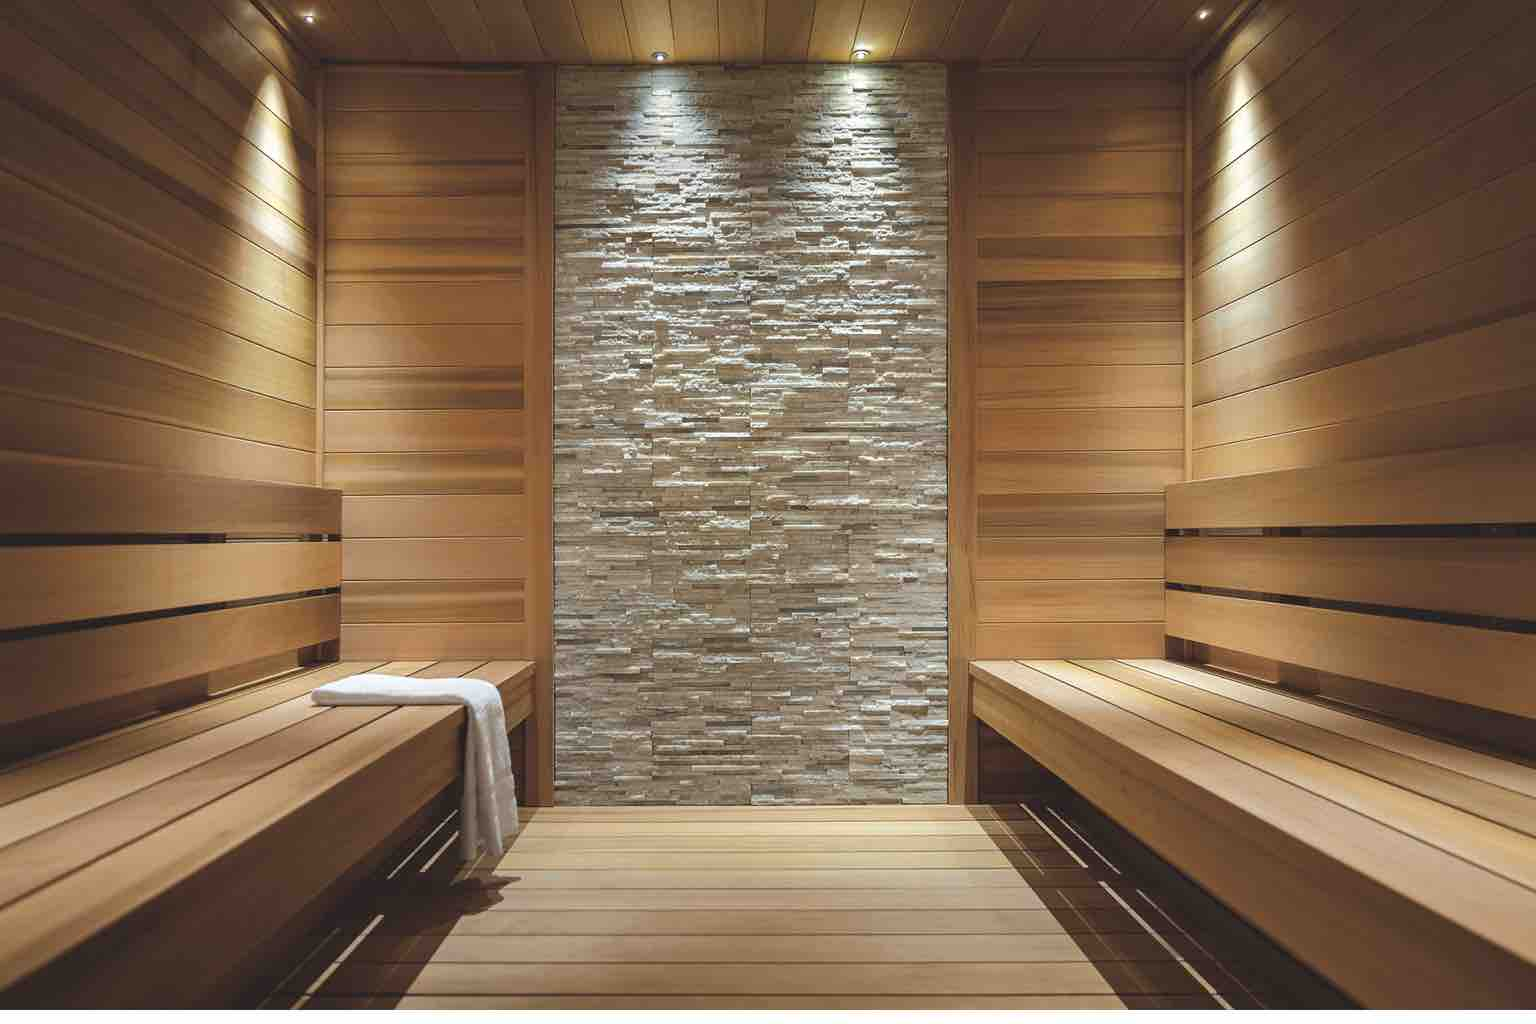 A pristine sauna with tile walls, wood floors and a wood bench holding a crisp white towel